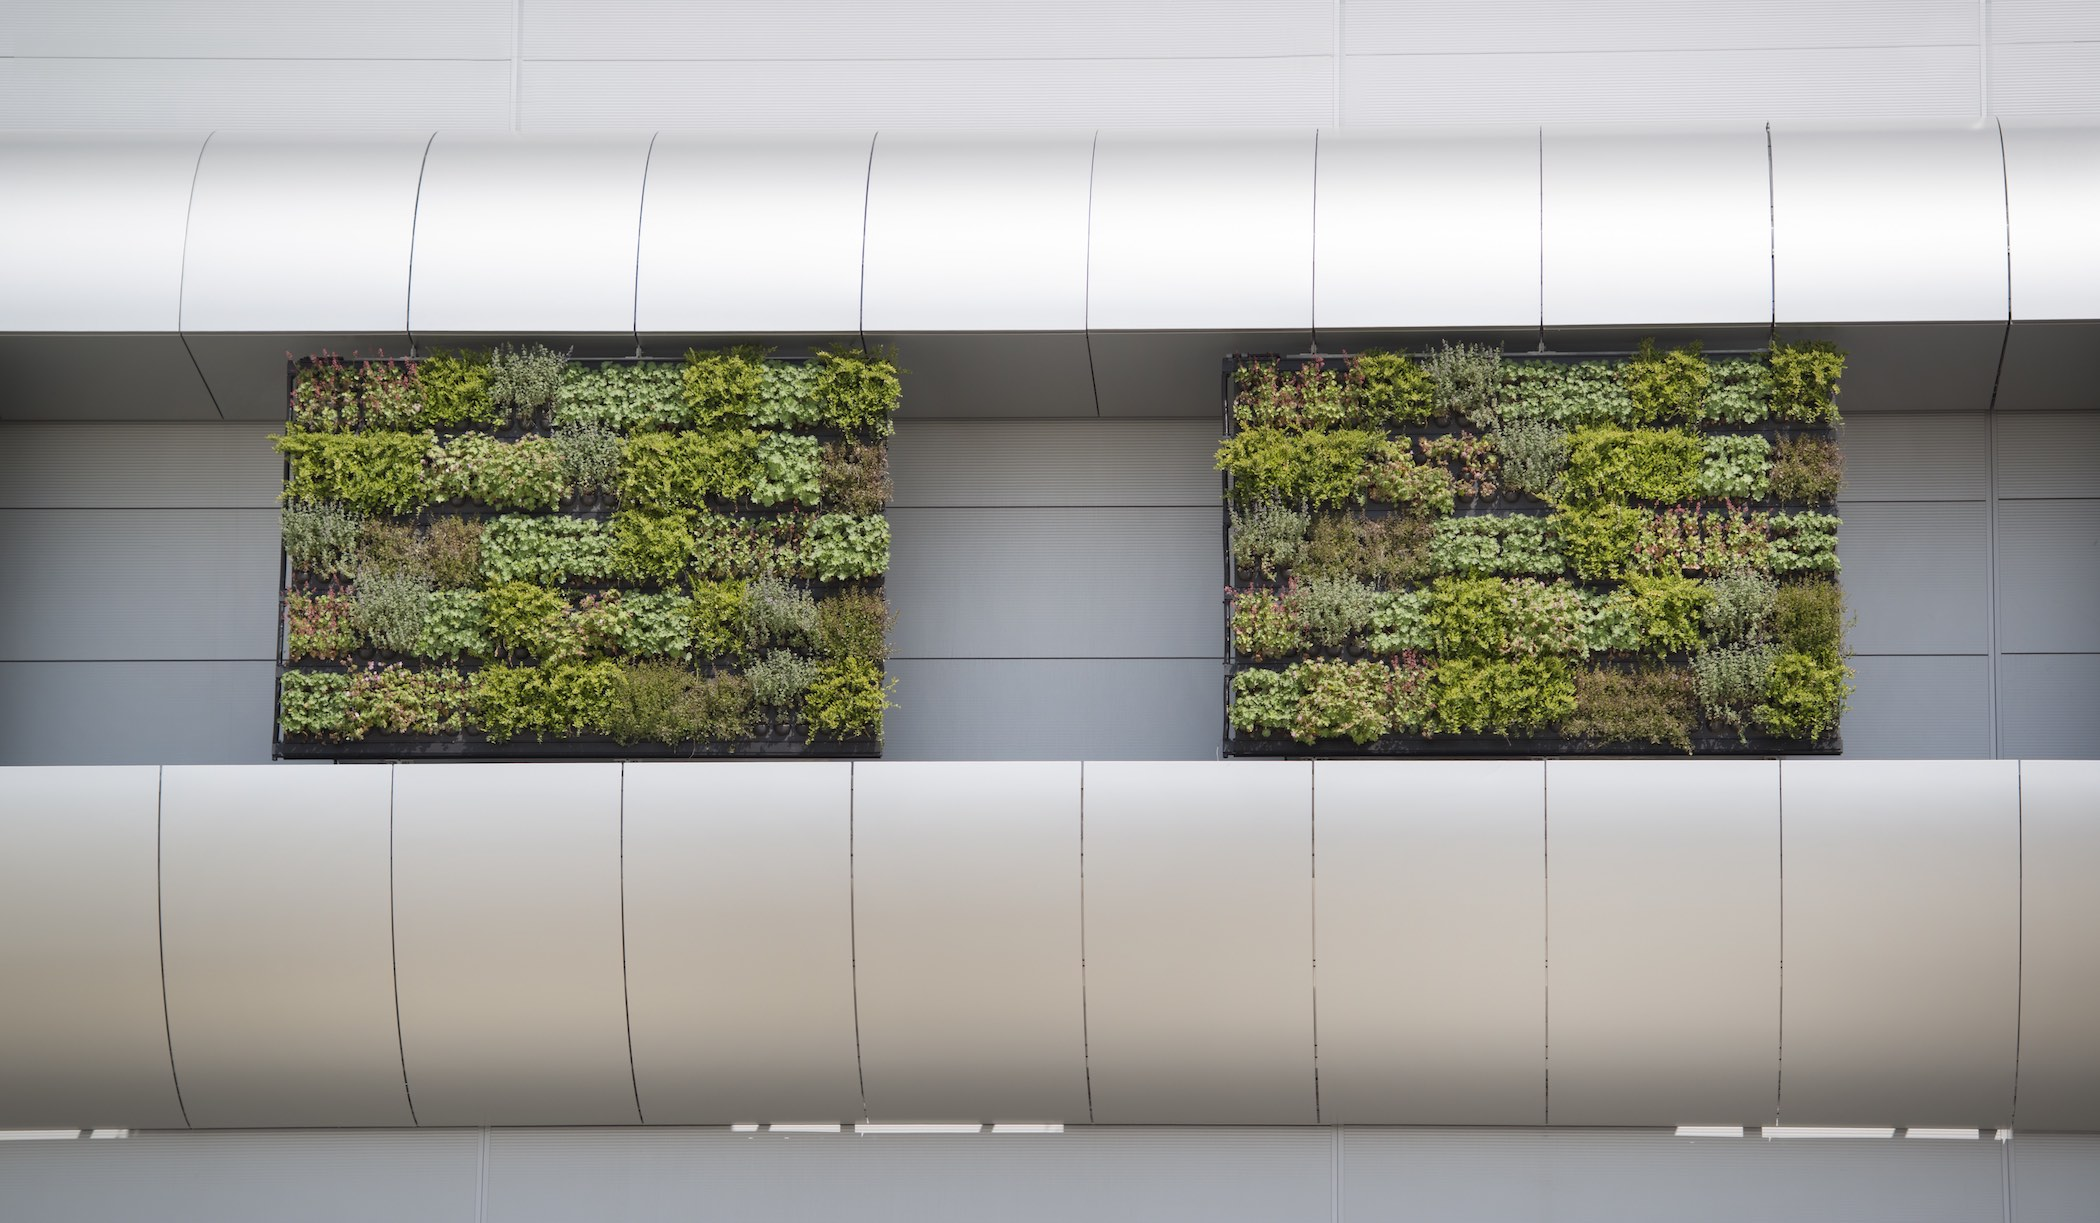 Outdoor green wall system - Nike